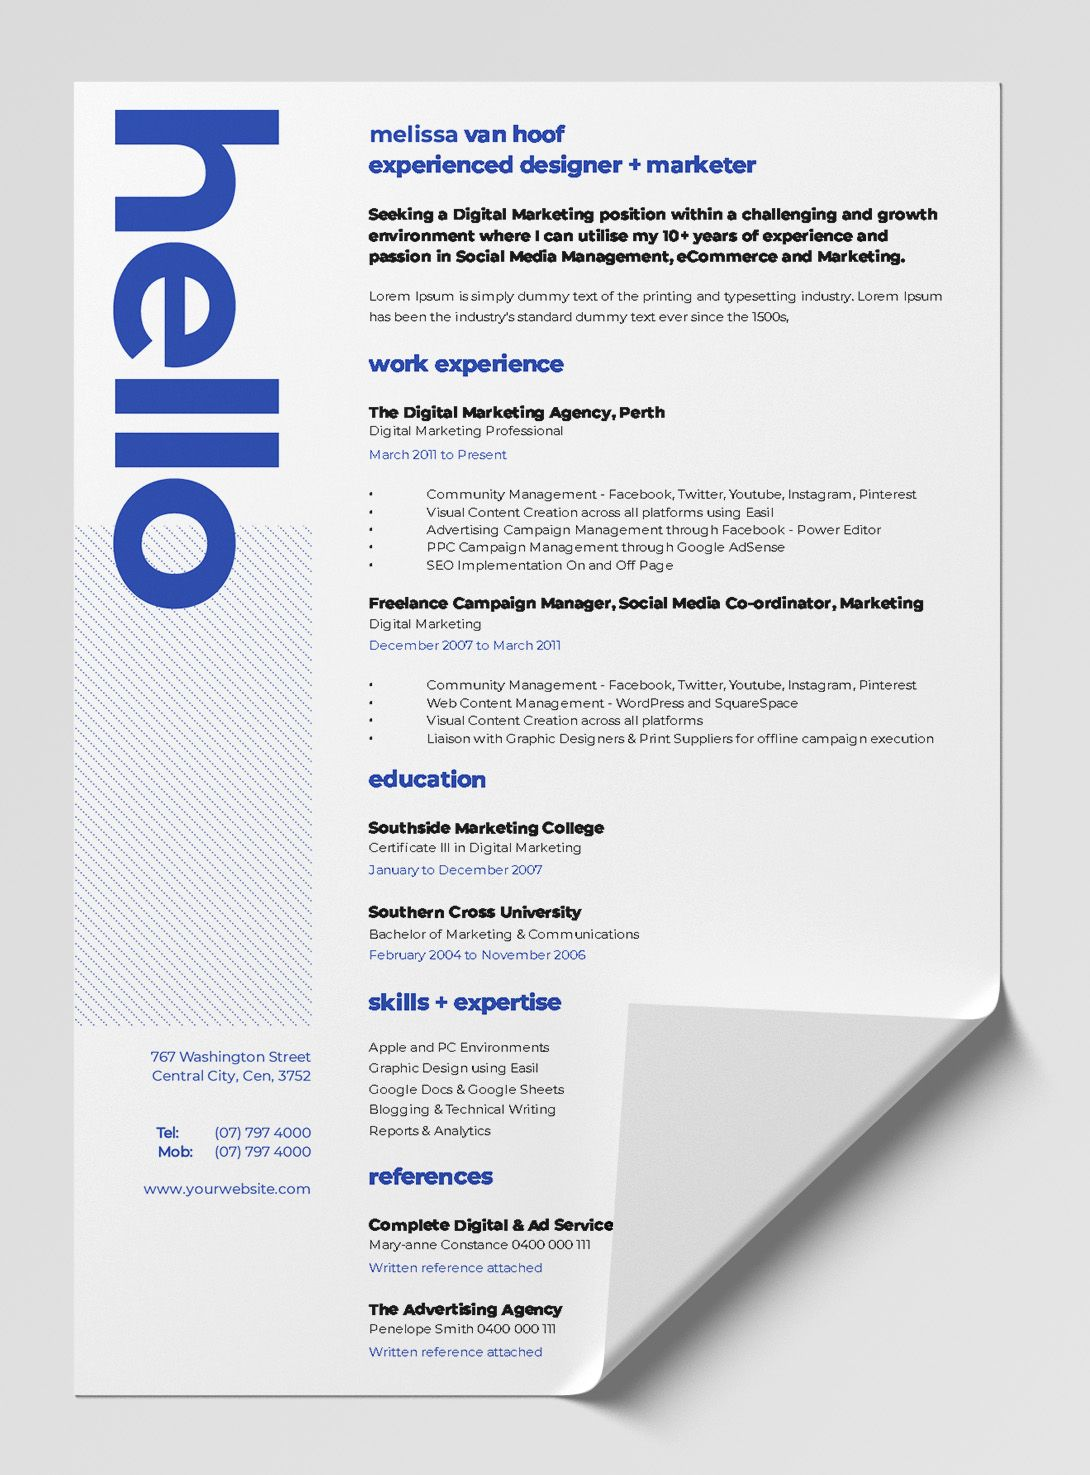 12 Best Free Resume Templates Tips On How To Stand Out Easil Resume Design Free Resume Design Creative Graphic Design Resume